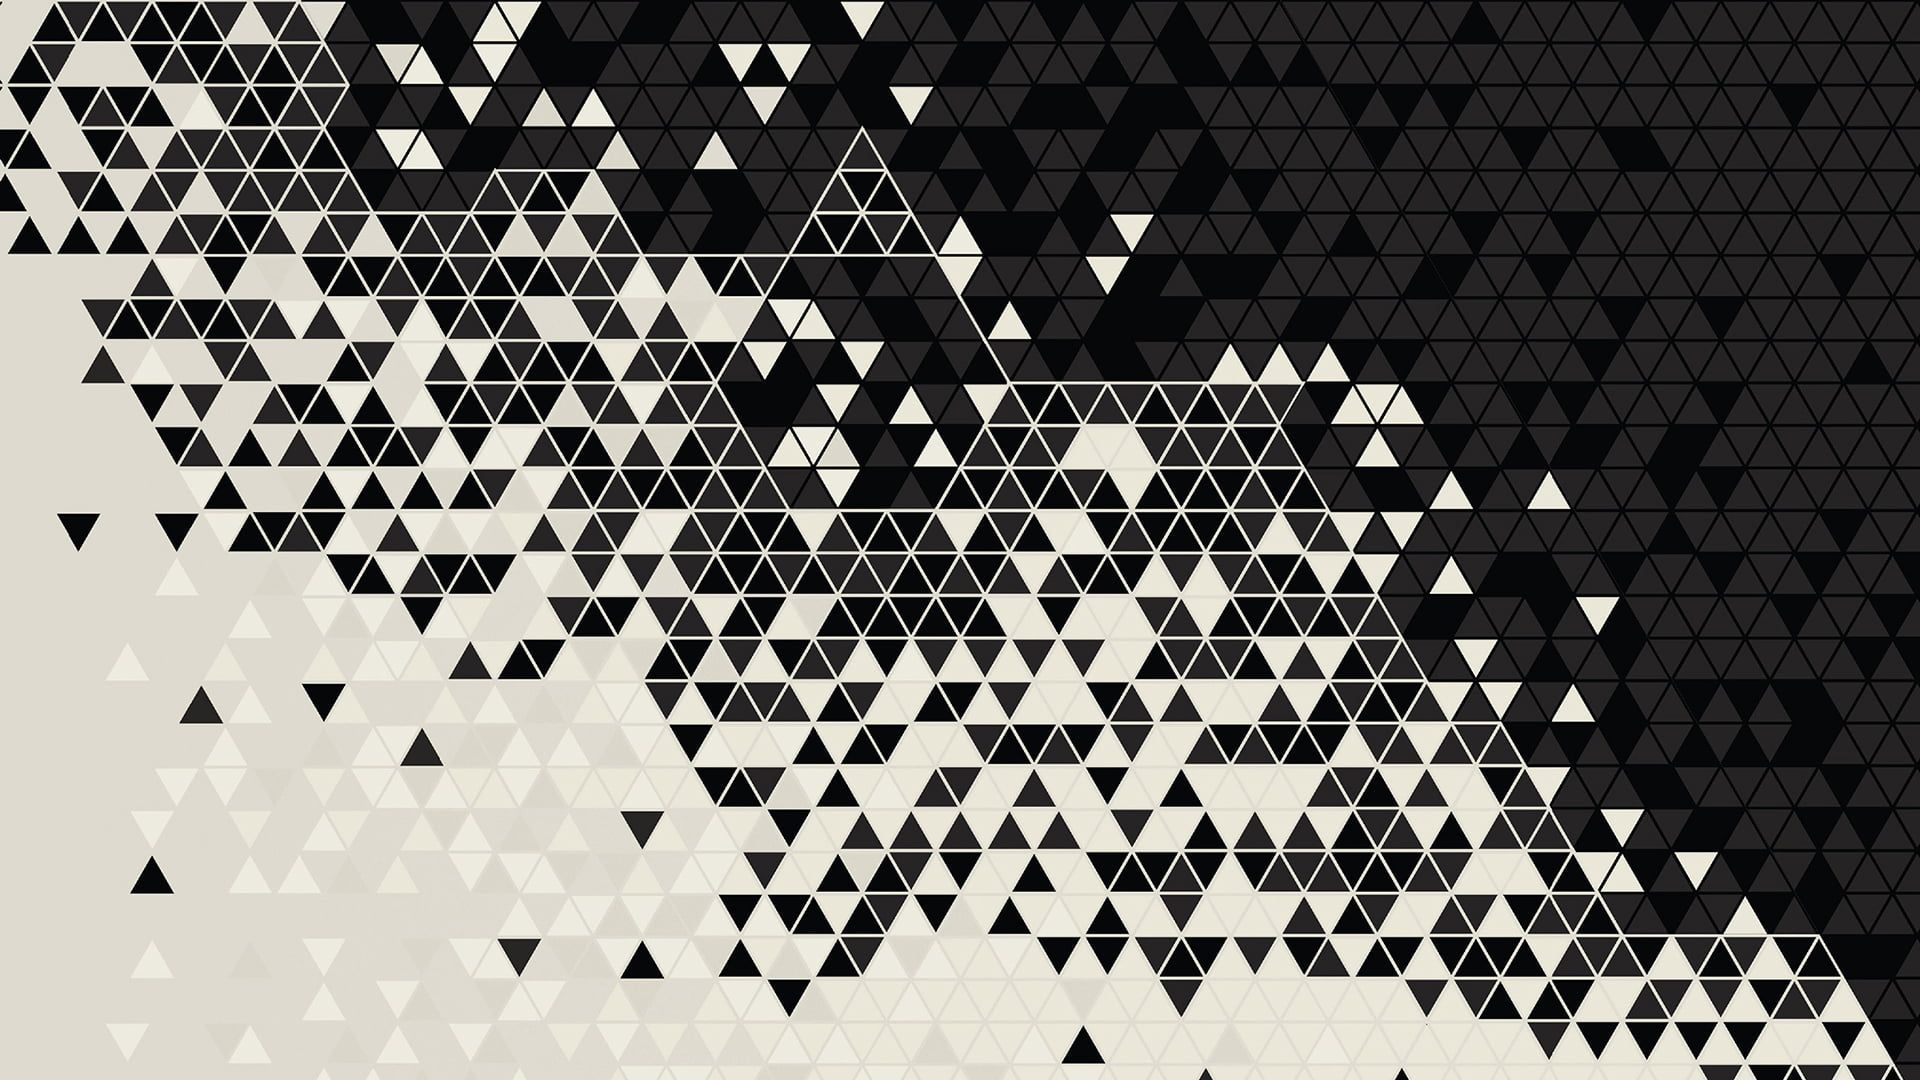 White And Black Abstract Wallpaper Pattern Digital Art Triangle 1080p Wallpaper Hdwallpaper D Abstract Wallpaper Abstract Iphone Wallpaper Black Abstract